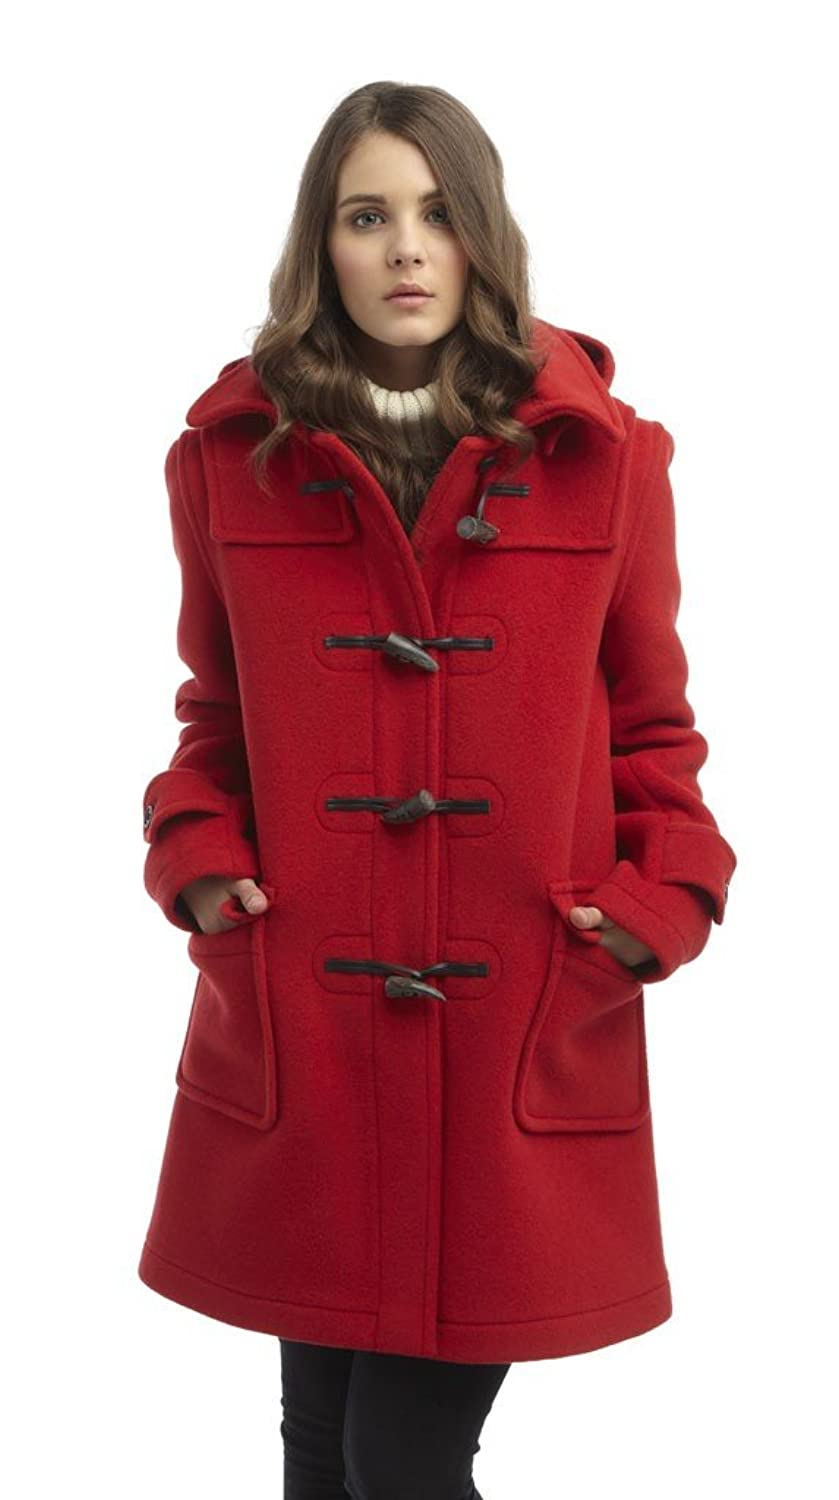 Womens London Duffle Coat -- Red: Amazon.co.uk: Clothing